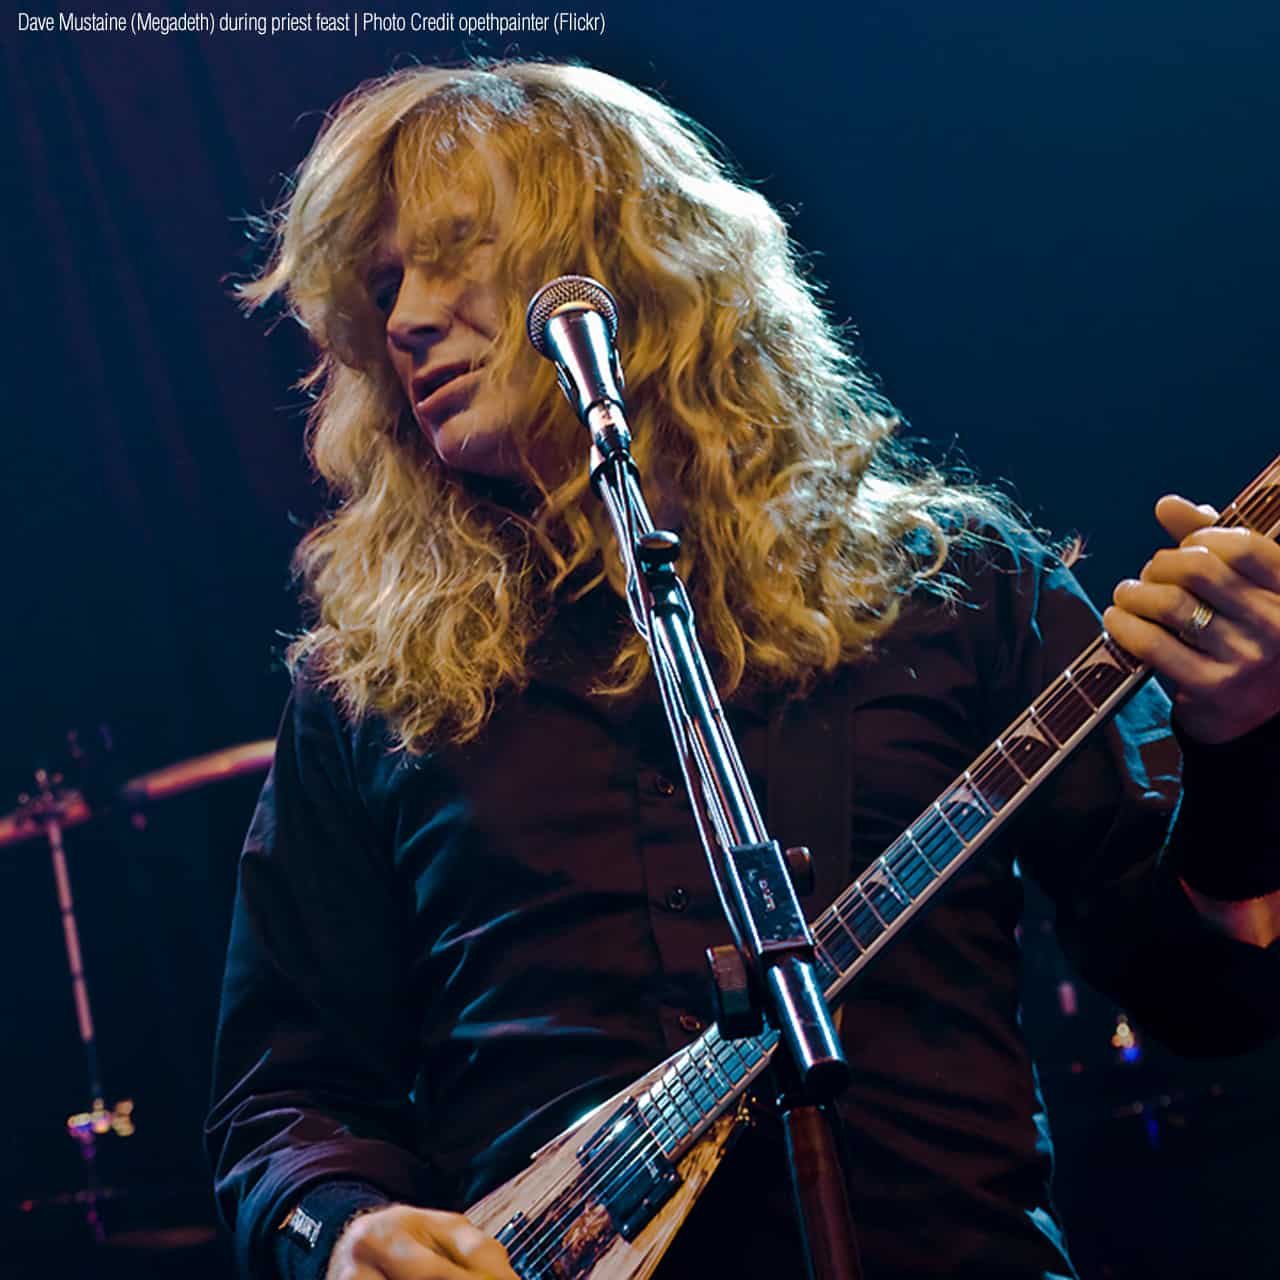 Cancer Diagnosis Was A Surprise To Megadeth Co-founders